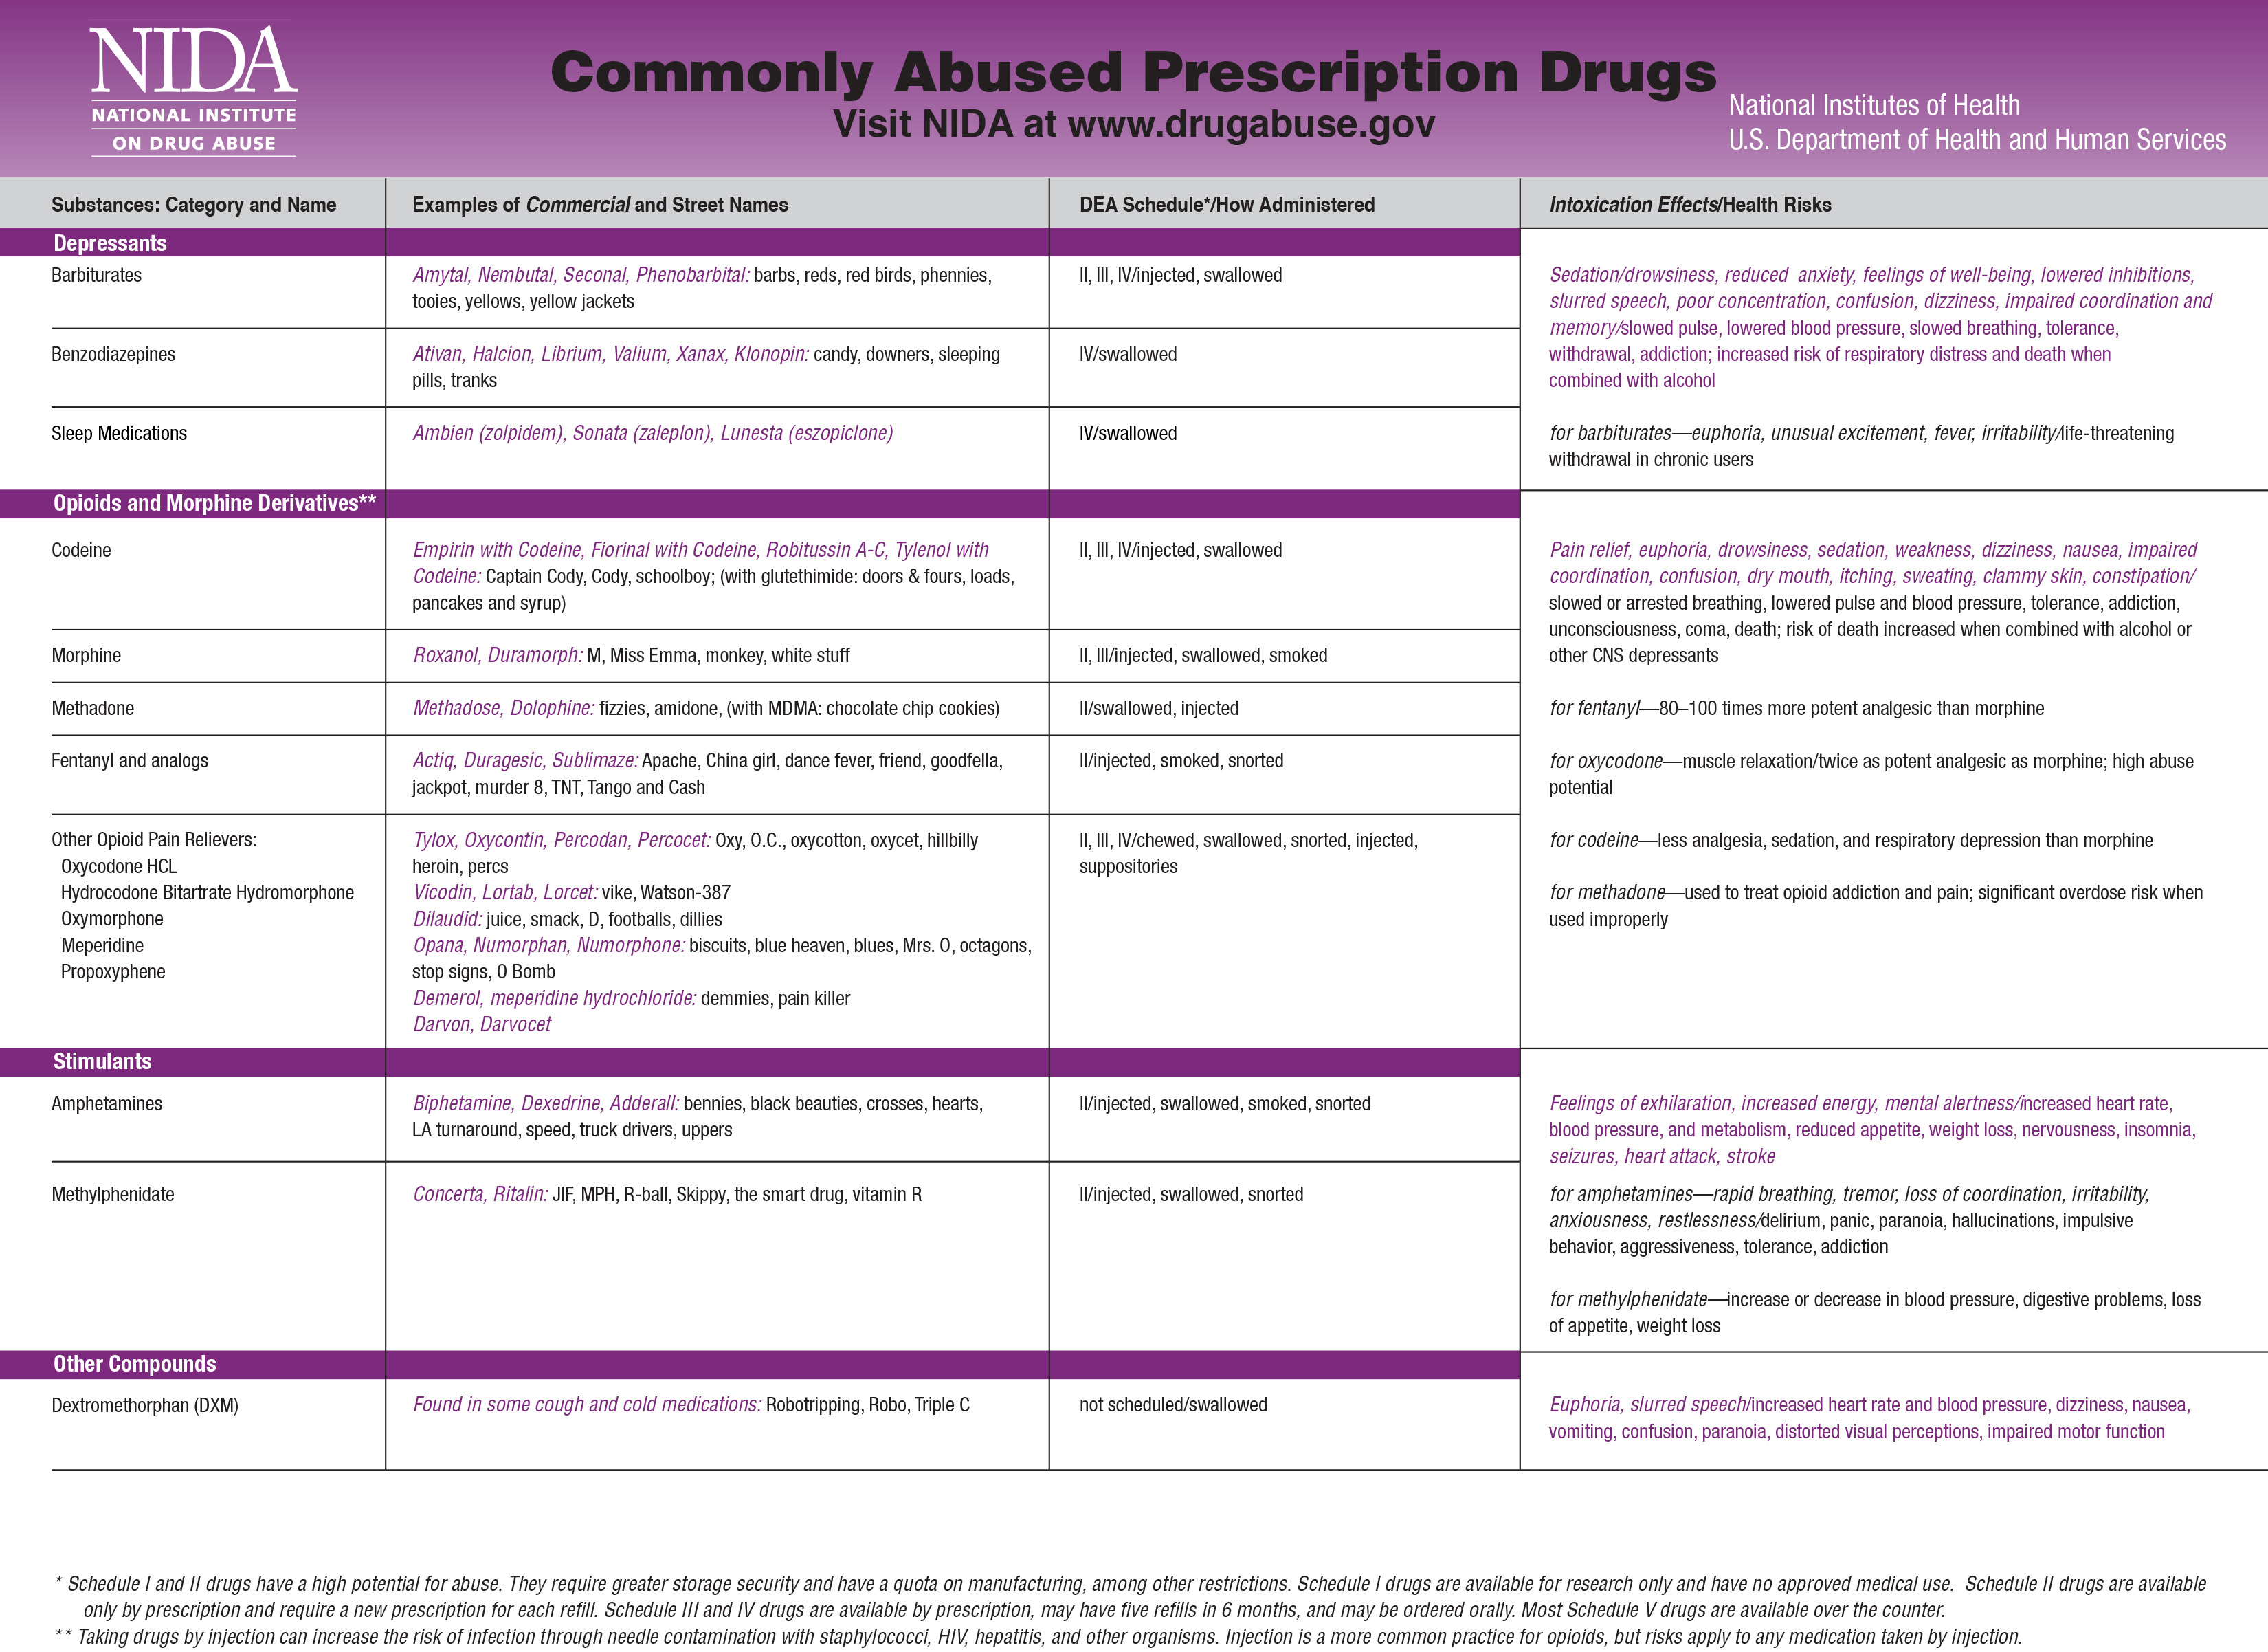 Prescription Drug Abuse Information And Resources Campus Office Of Substance Abuse Prevention The University Of New Mexico